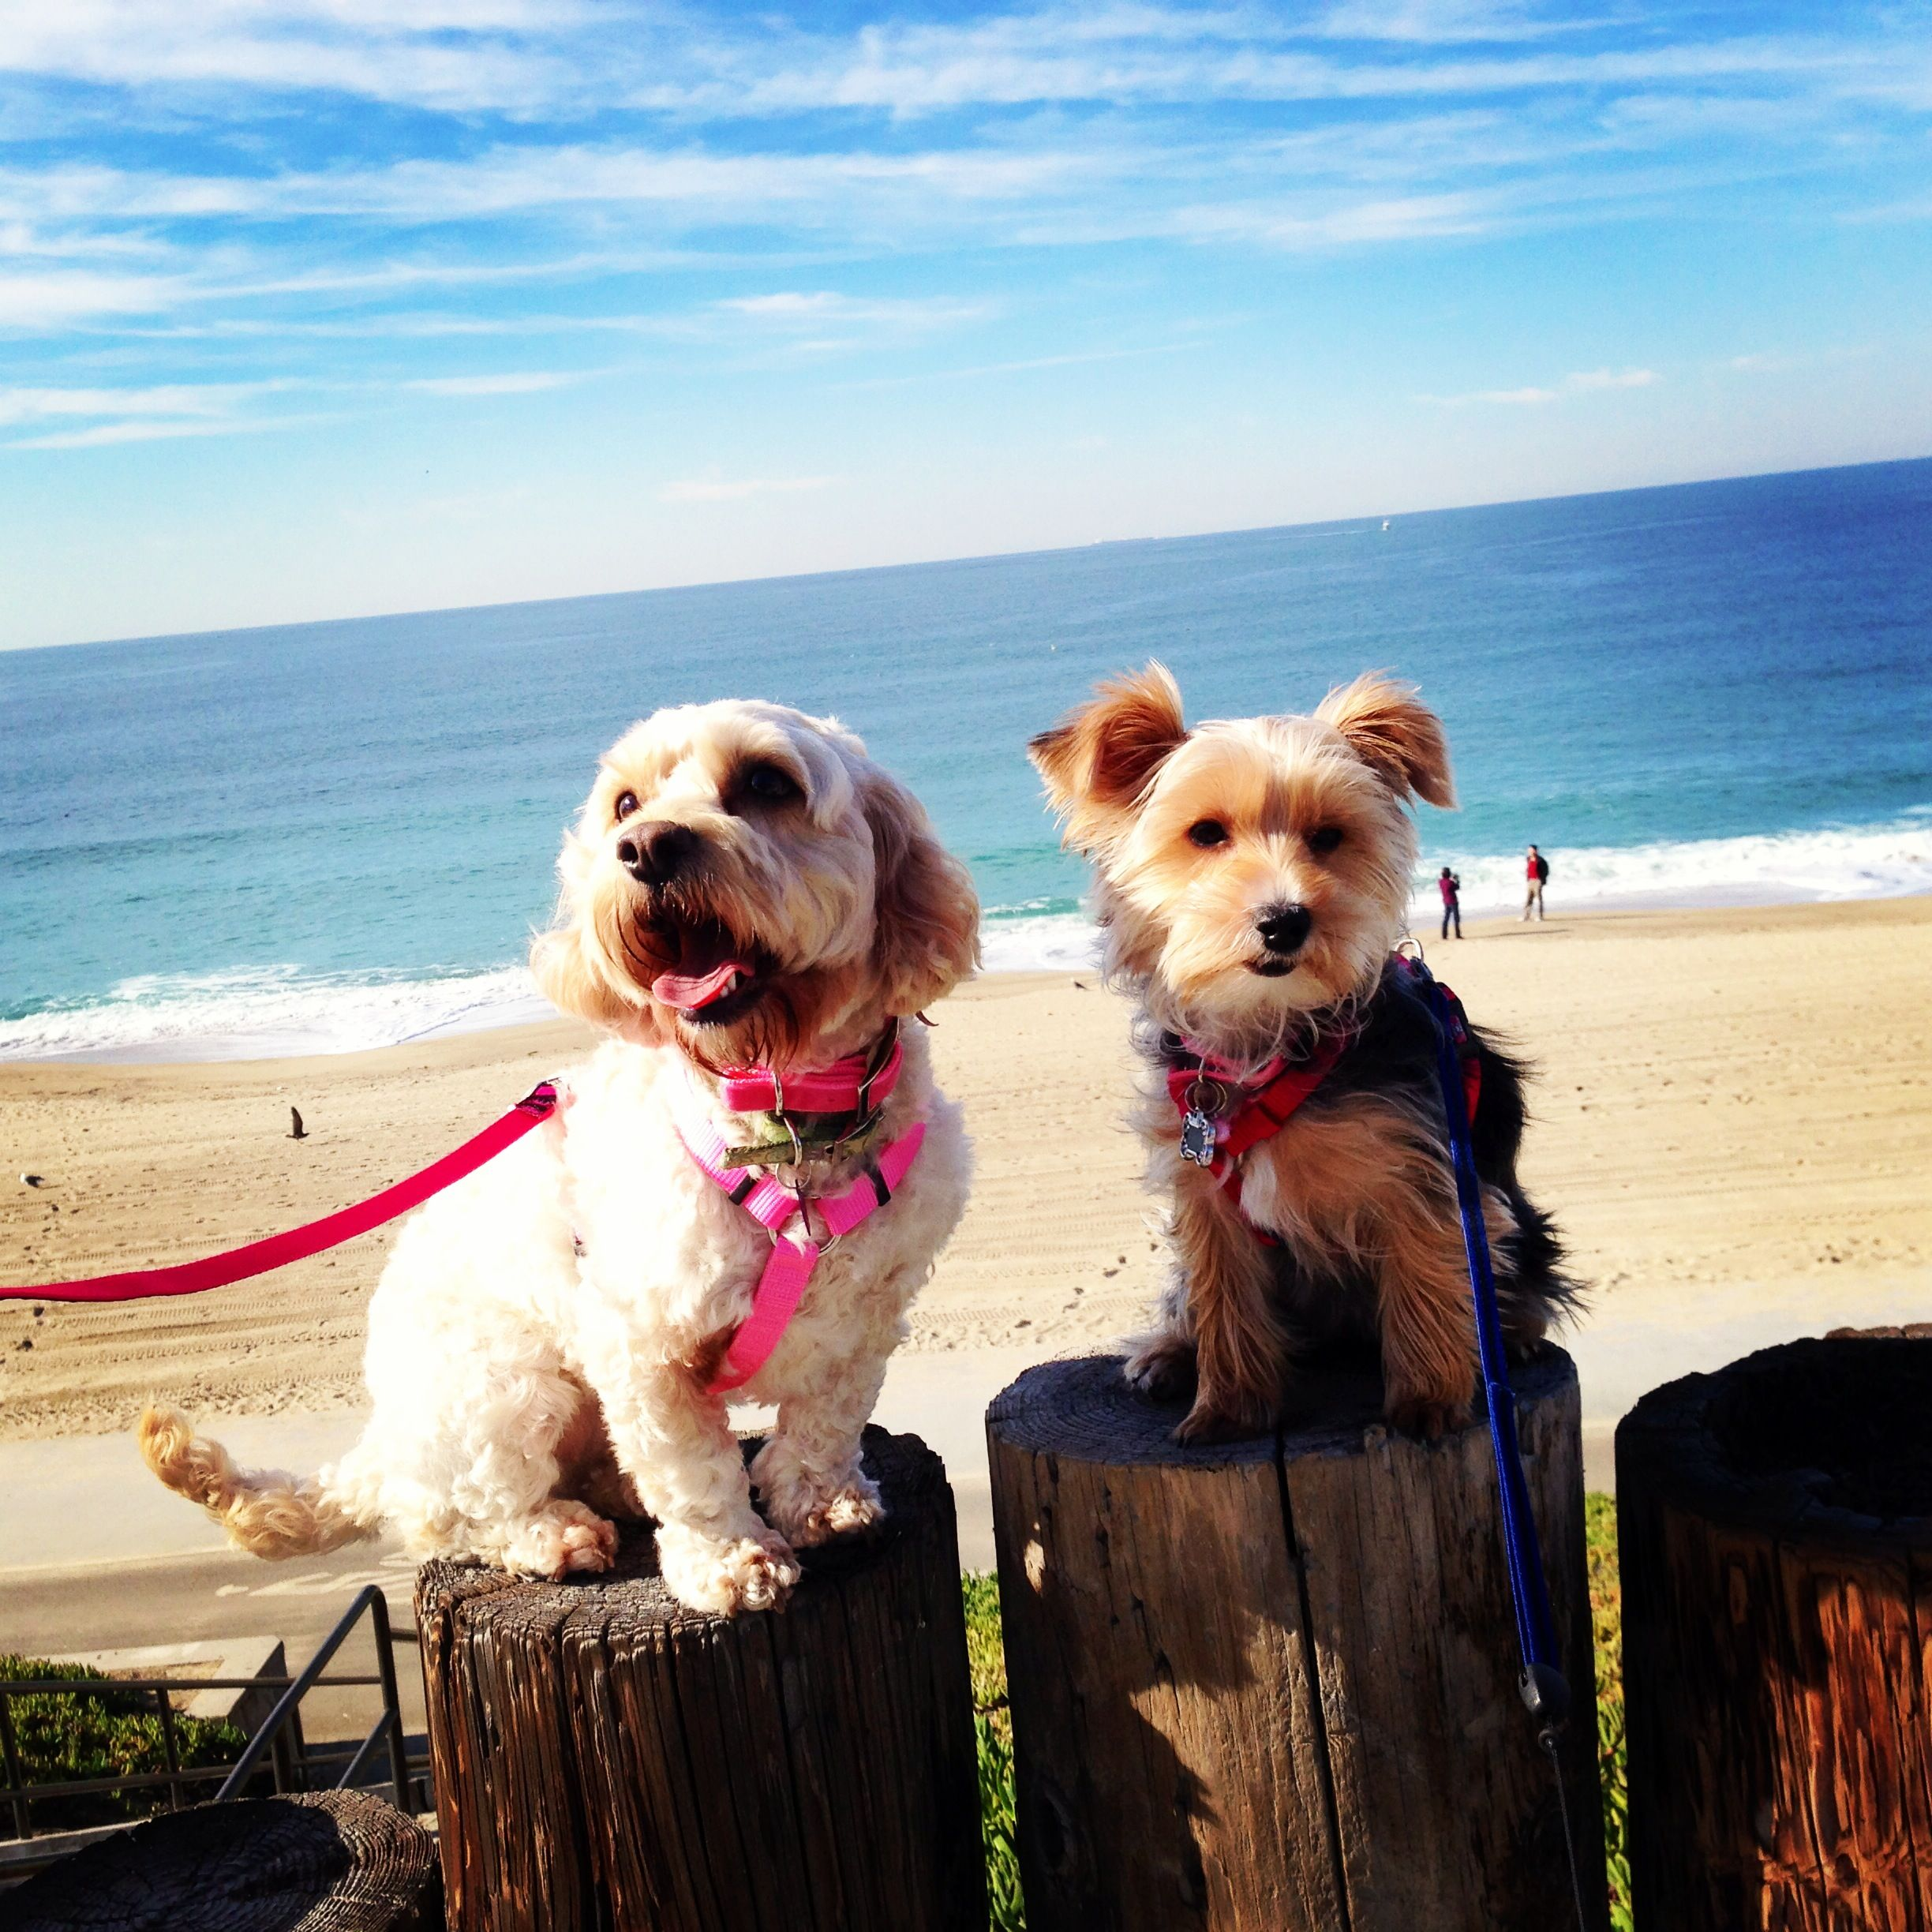 Dogs day at the beach :)